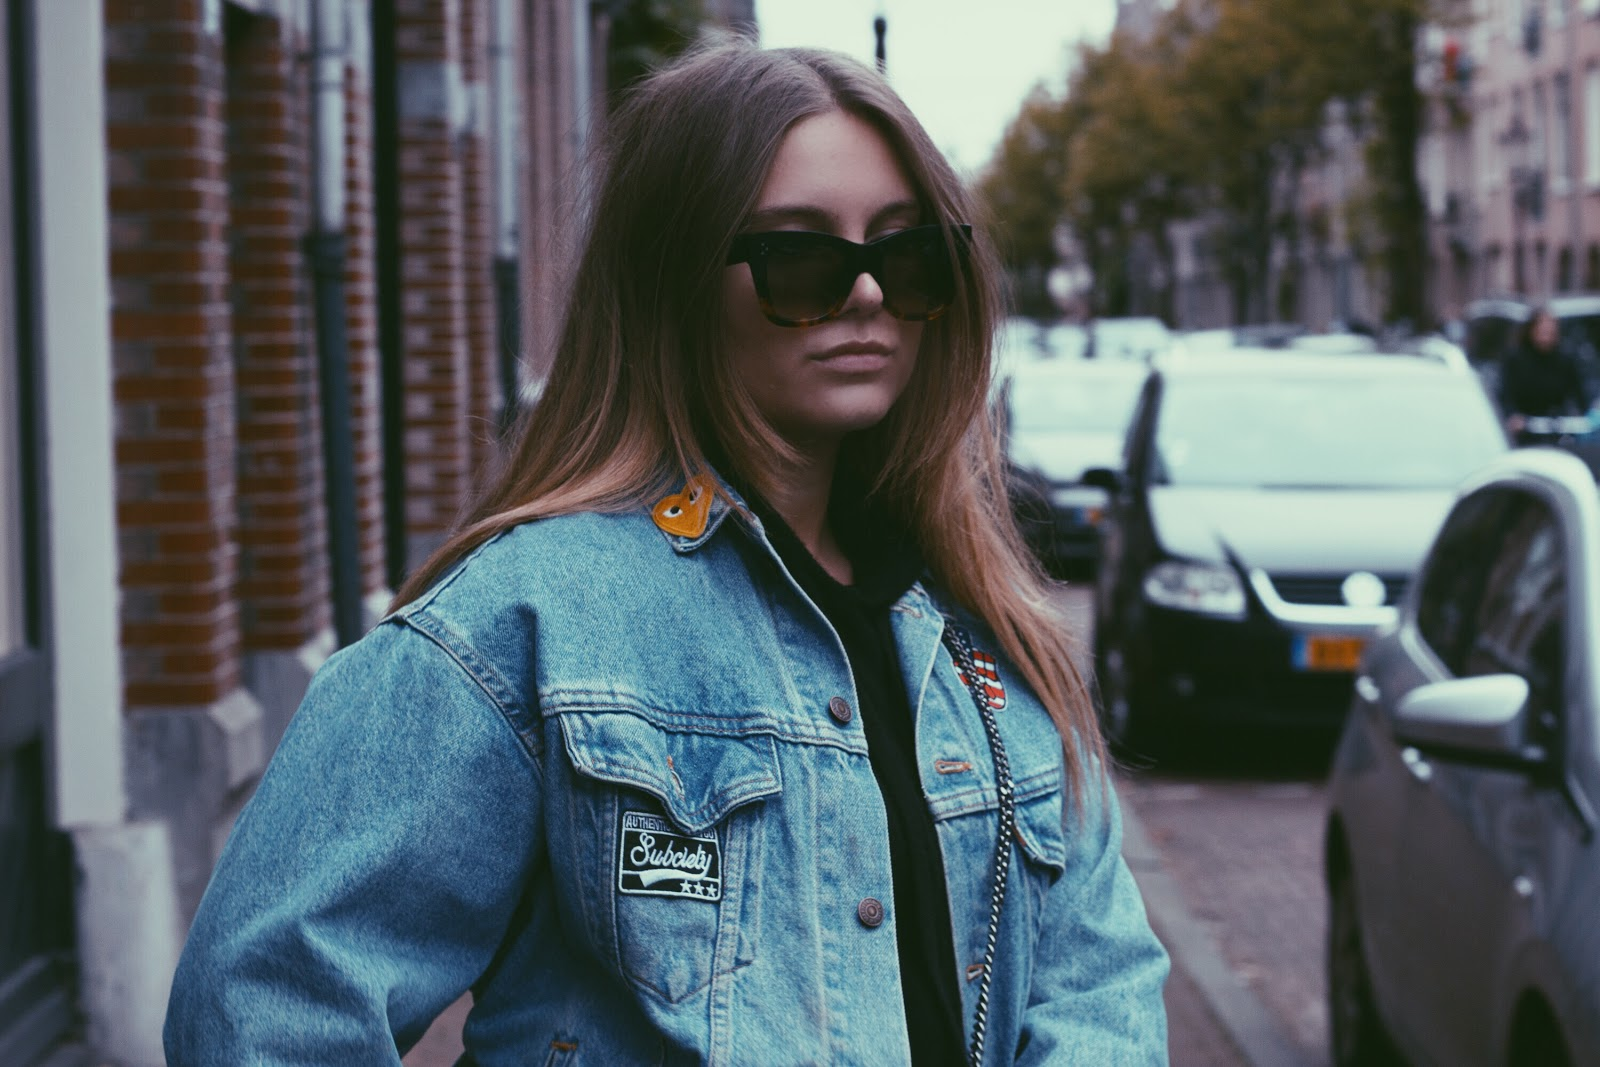 blogger, deau, blog, fashion, stella mccartney, celine, levi's, levis, zadig&voltaire, asos, adidas, outfit, mode, inspiration, fall, winter, jacket, patches, patch,